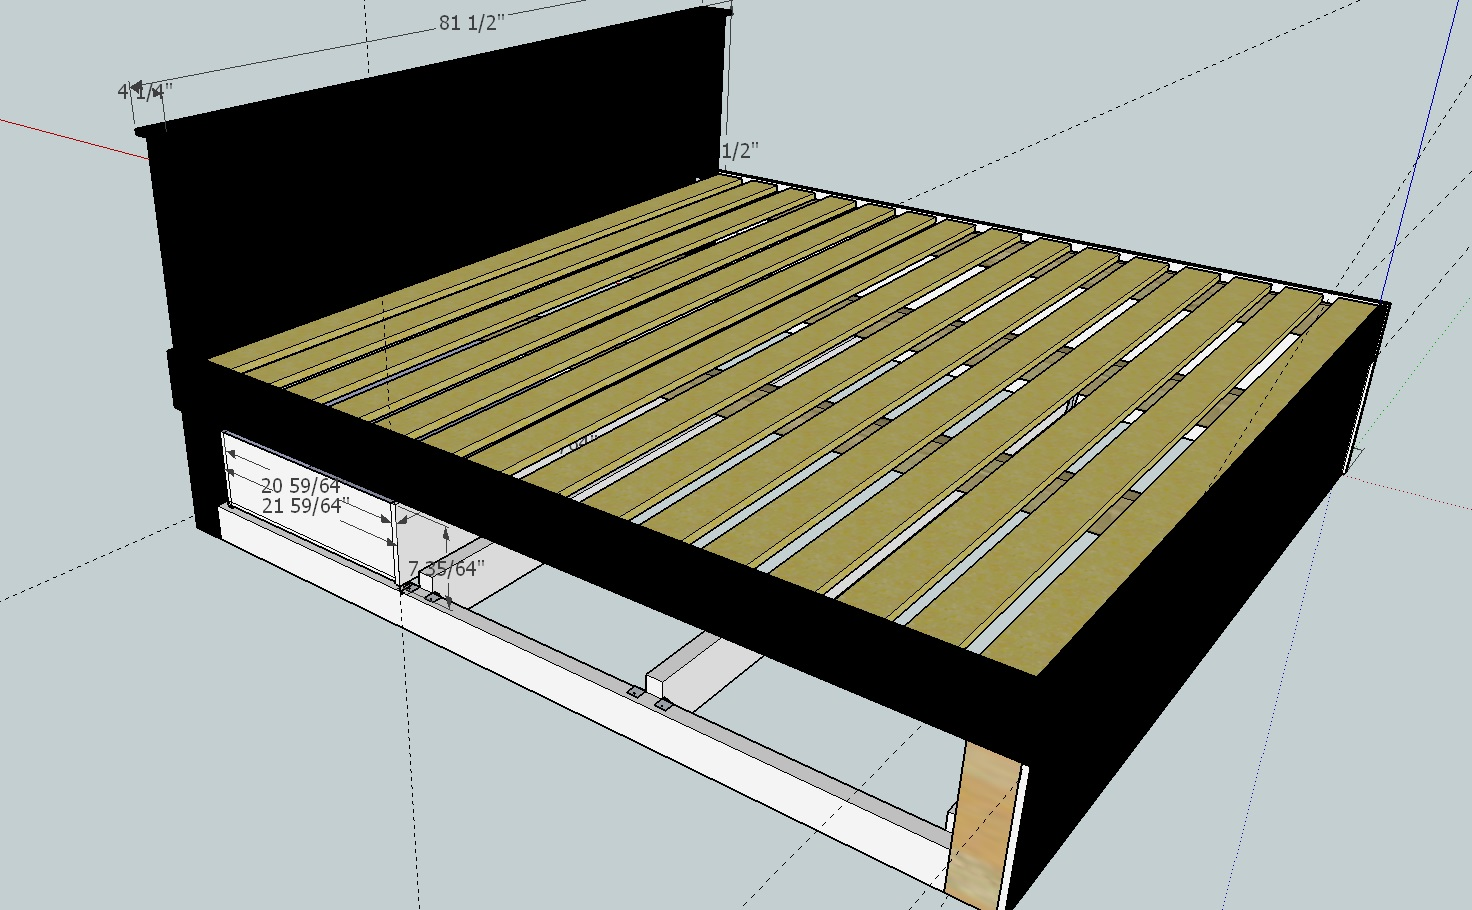 DIY Bed Plans With Drawers PDF Download medieval dining  : bed iso1 from acceptable88hlp.wordpress.com size 1472 x 910 jpeg 280kB